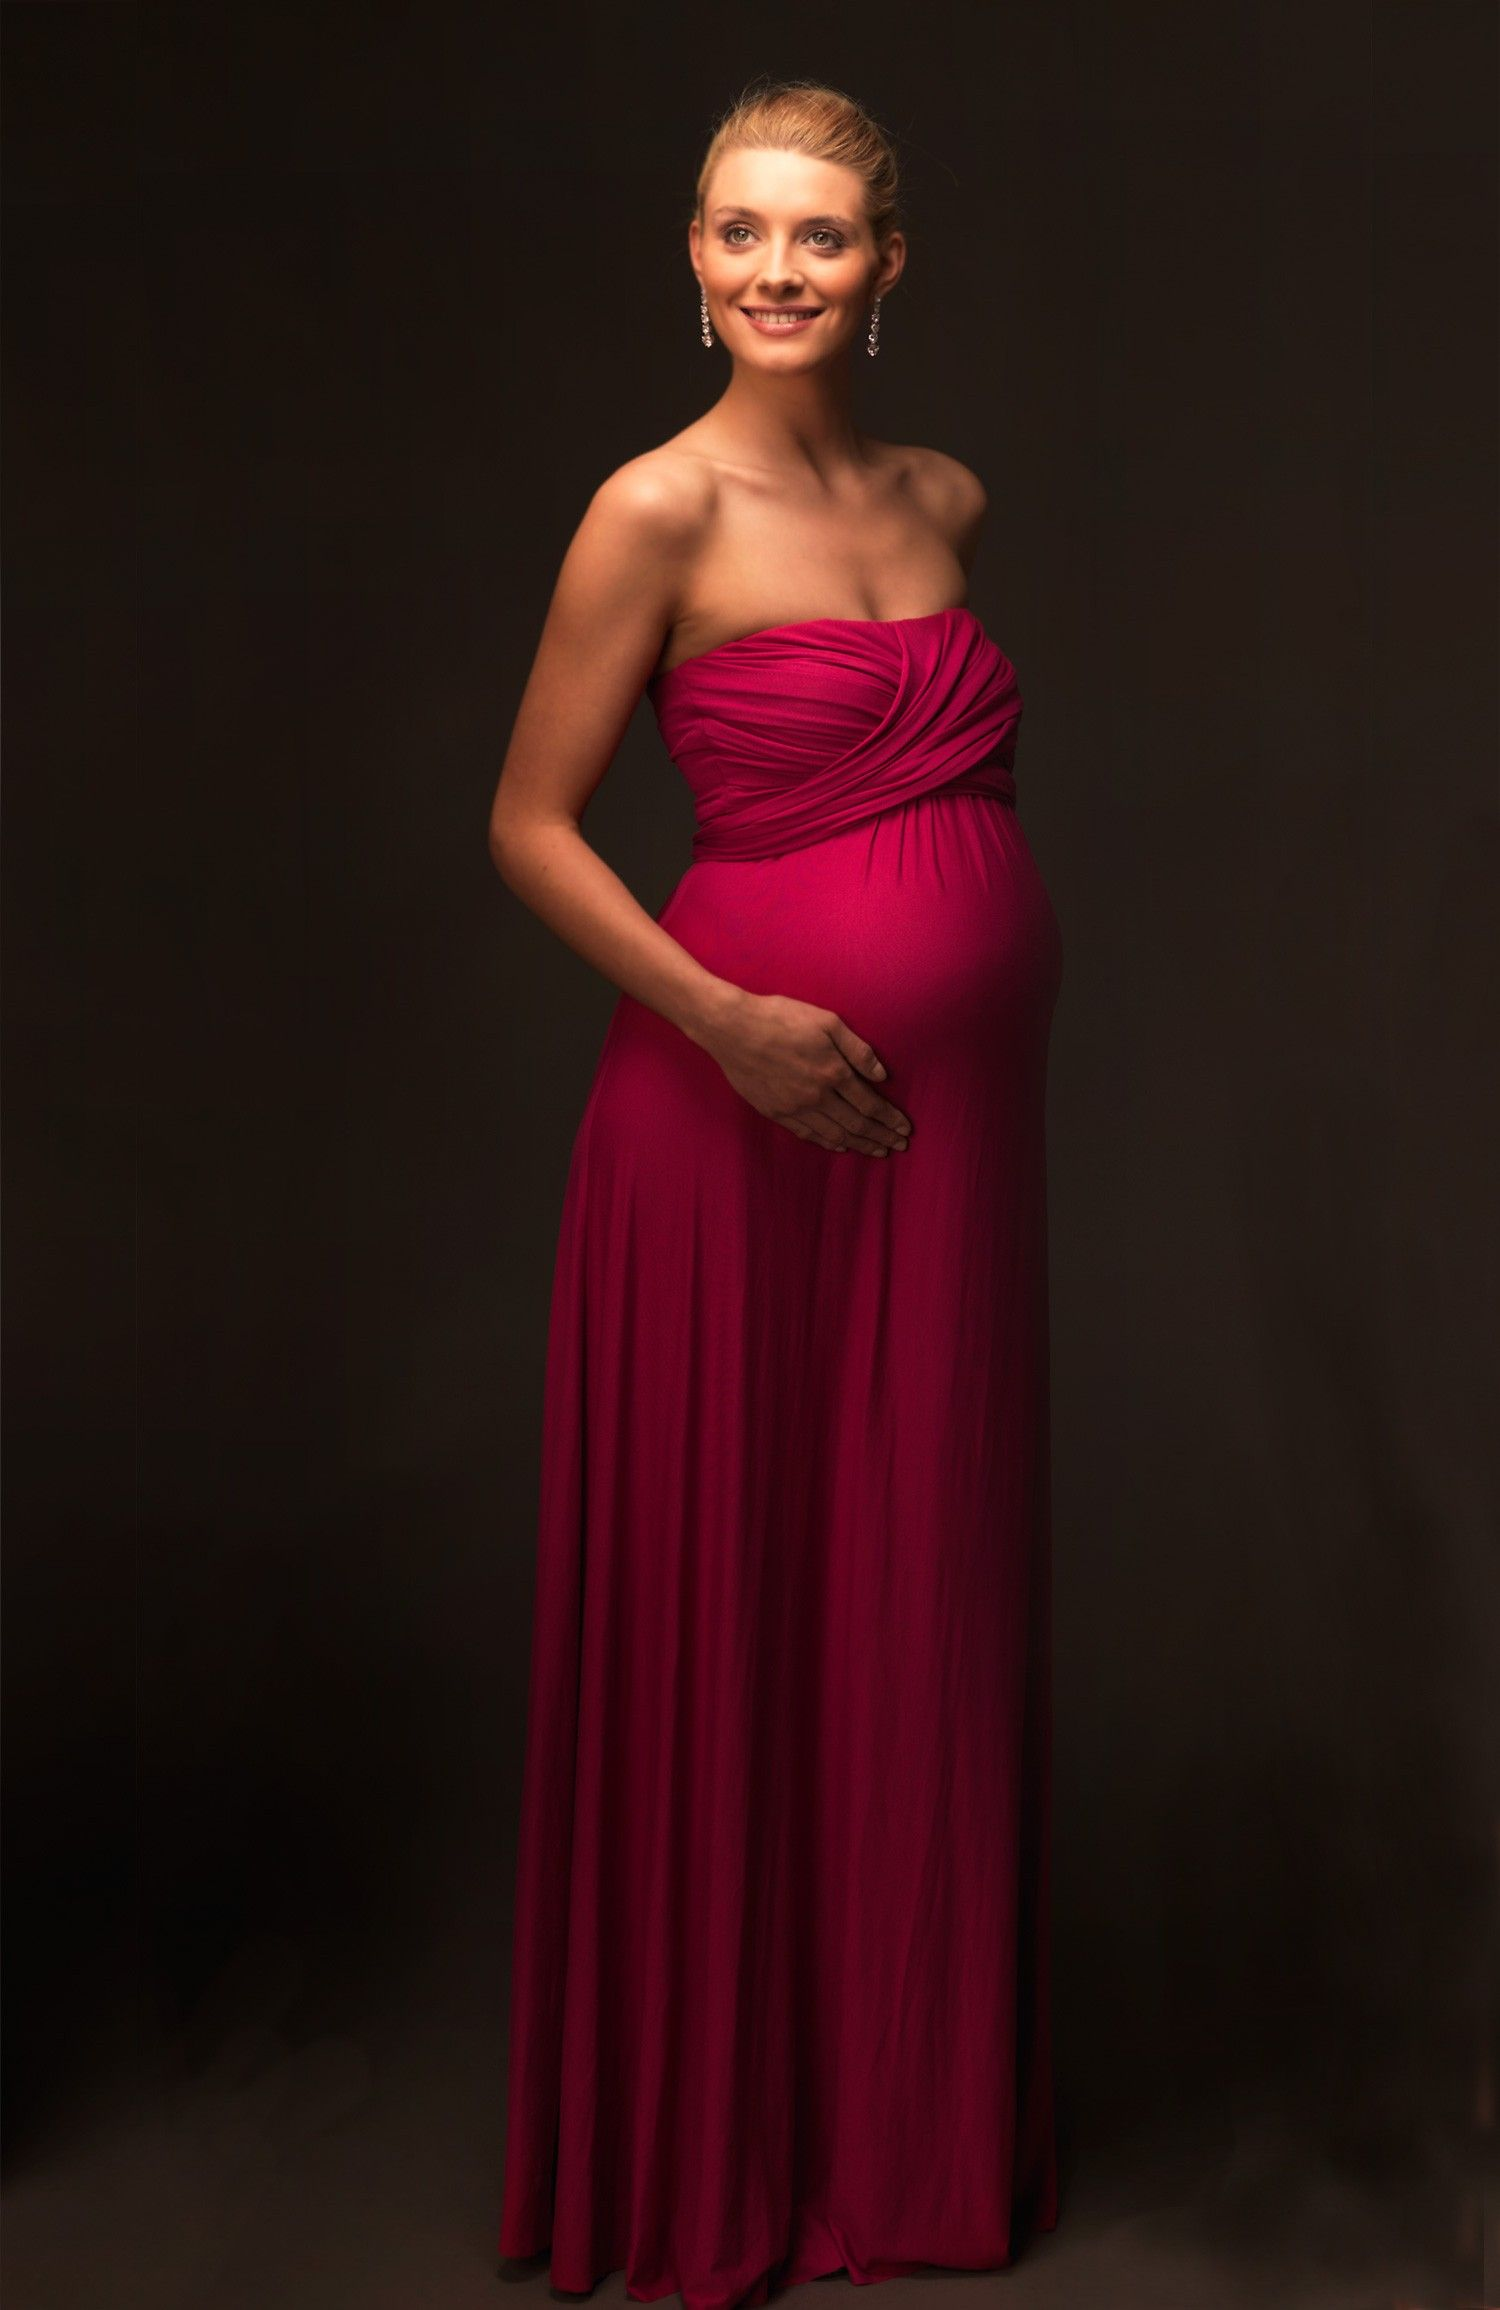 maxi strapless maternity dress sale 109 wear it multiple ways also in black